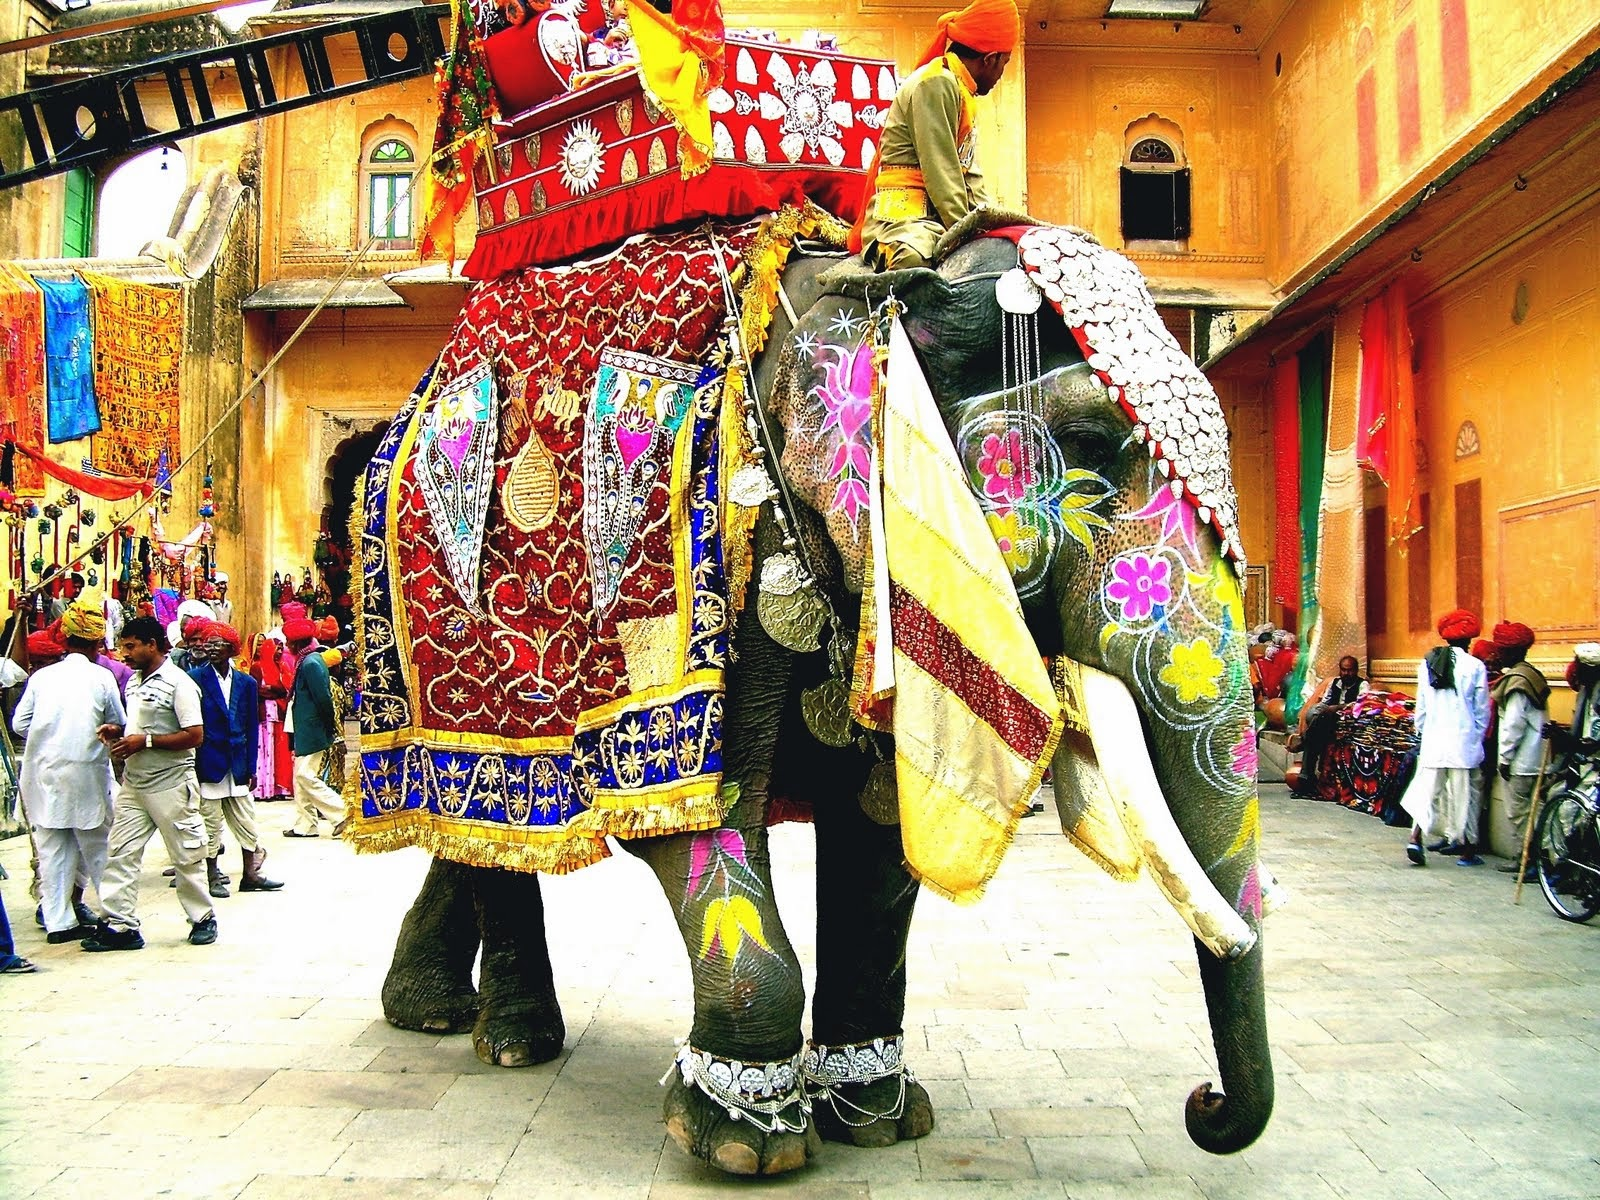 A Regally Adorned Elephant in Rajasthan